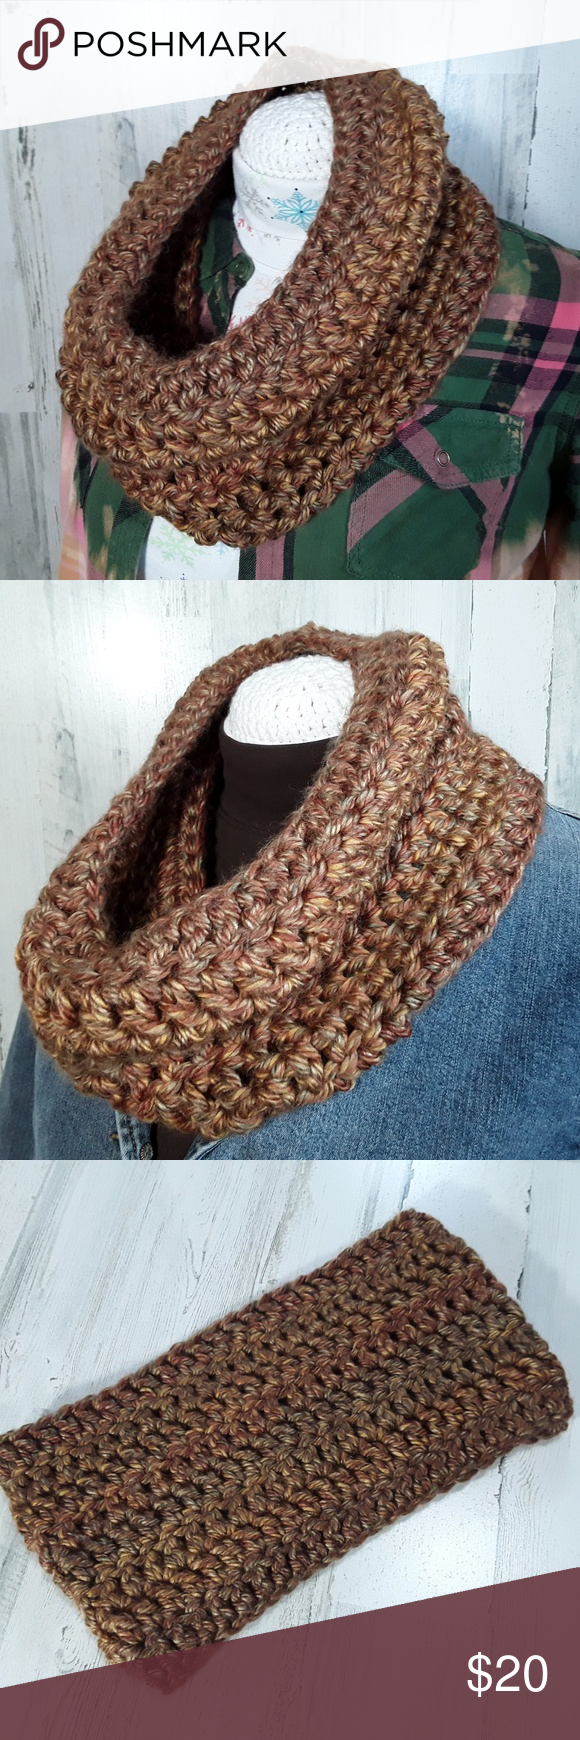 Scarf Infinity Cowl Crochet Thick Soft Brown This listing is for one infinity scarf crocheted in variegated shades of brown. It is rich with color, versatile, and still in very good pre-owned condition. This is definitely a gotta-have-it wardrobe essential. Would make an excellent gift. Measurements 30 inches around 8 inches wide Crochet Accessories Scarves & Wraps #gottahaveit